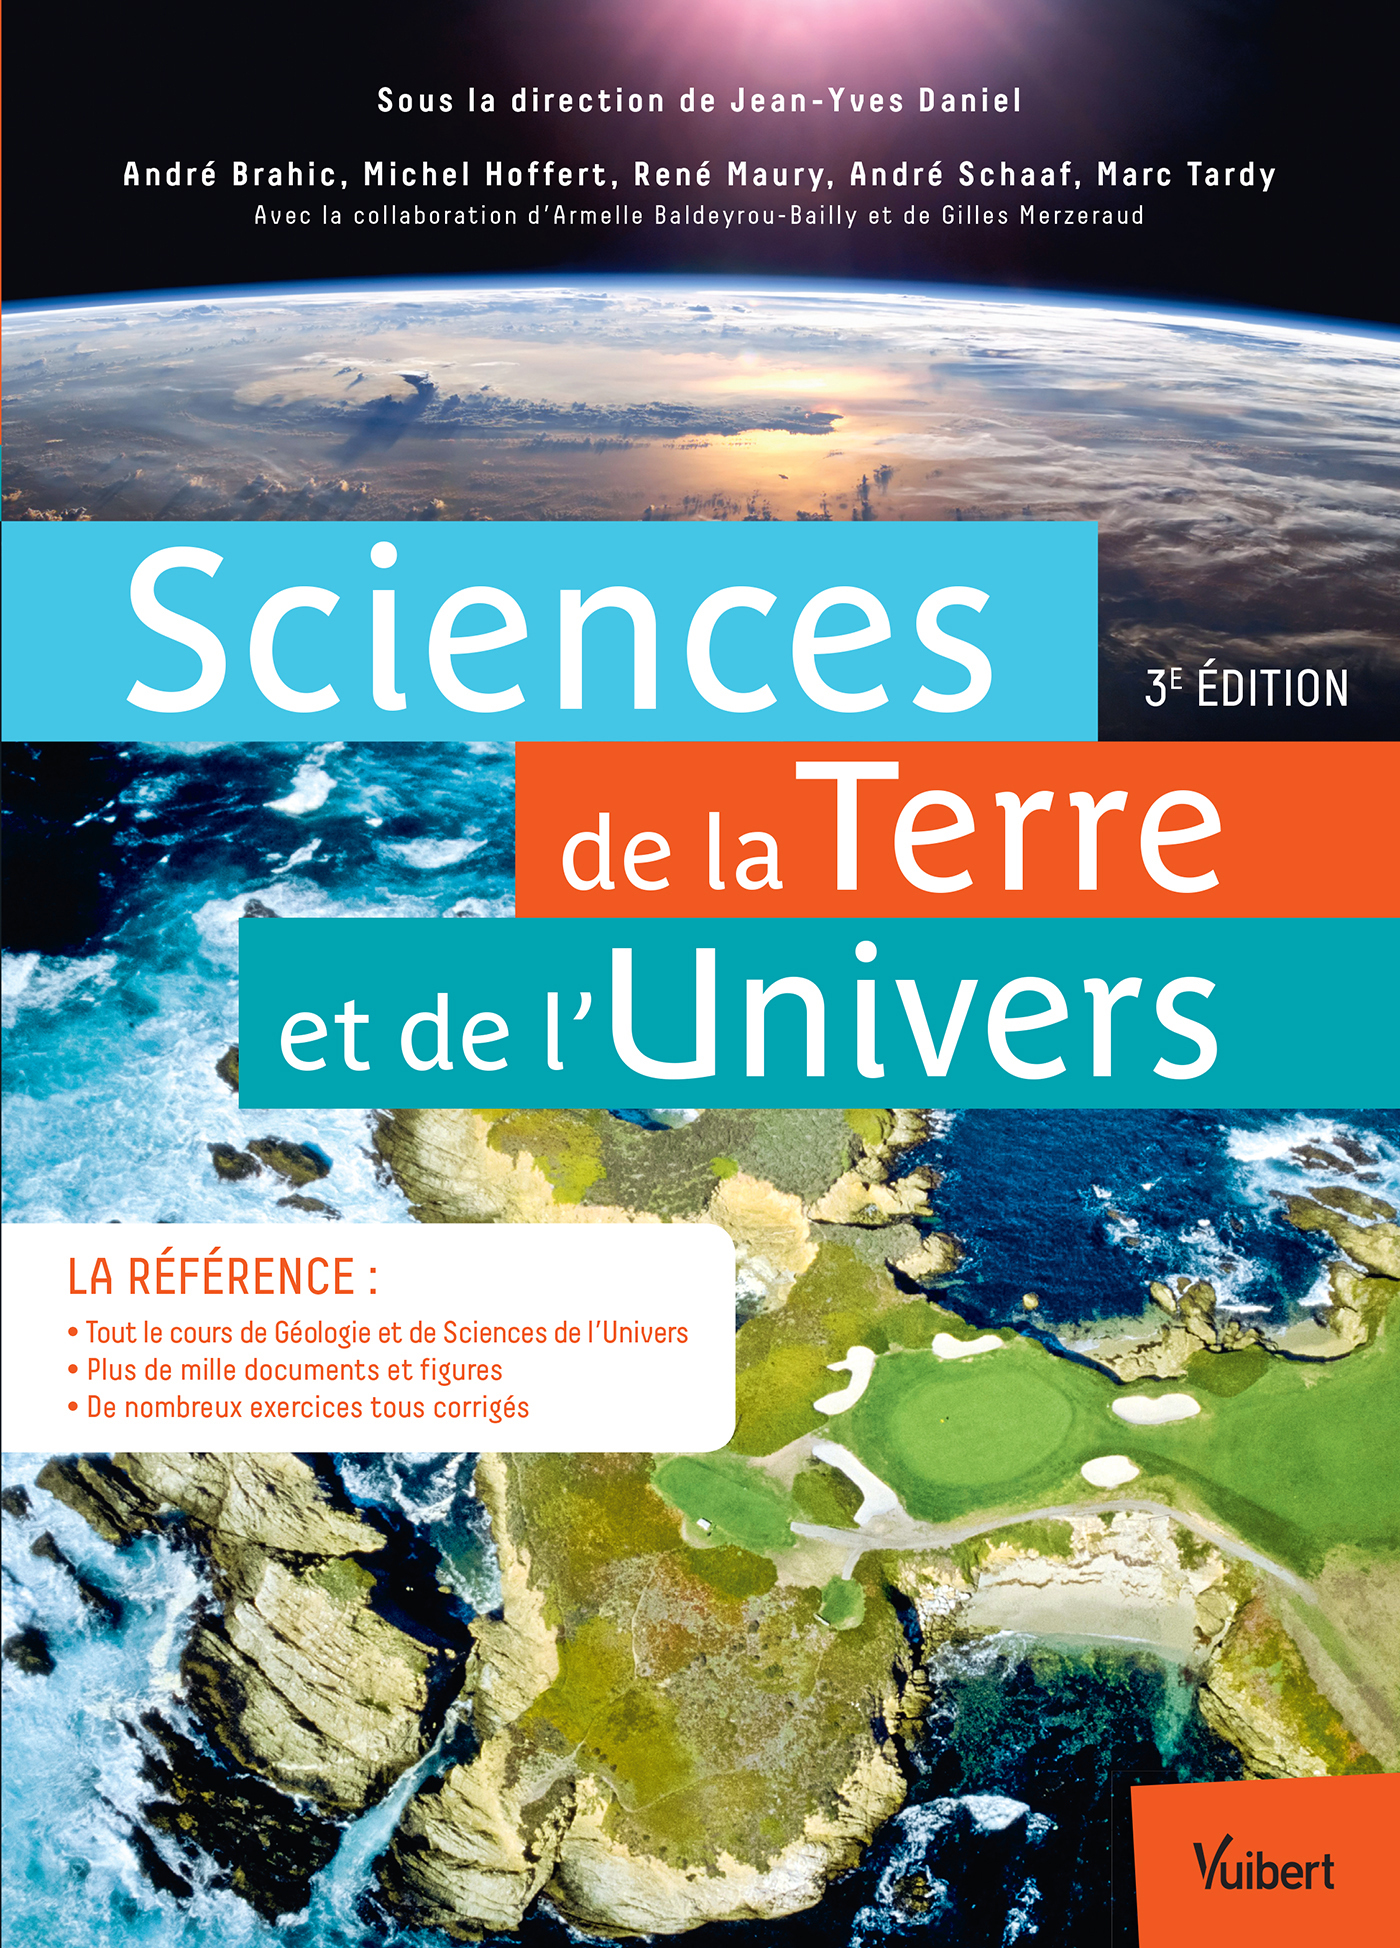 SCIENCES DE LA TERRE ET DE L'UNIVERS 3E EDT